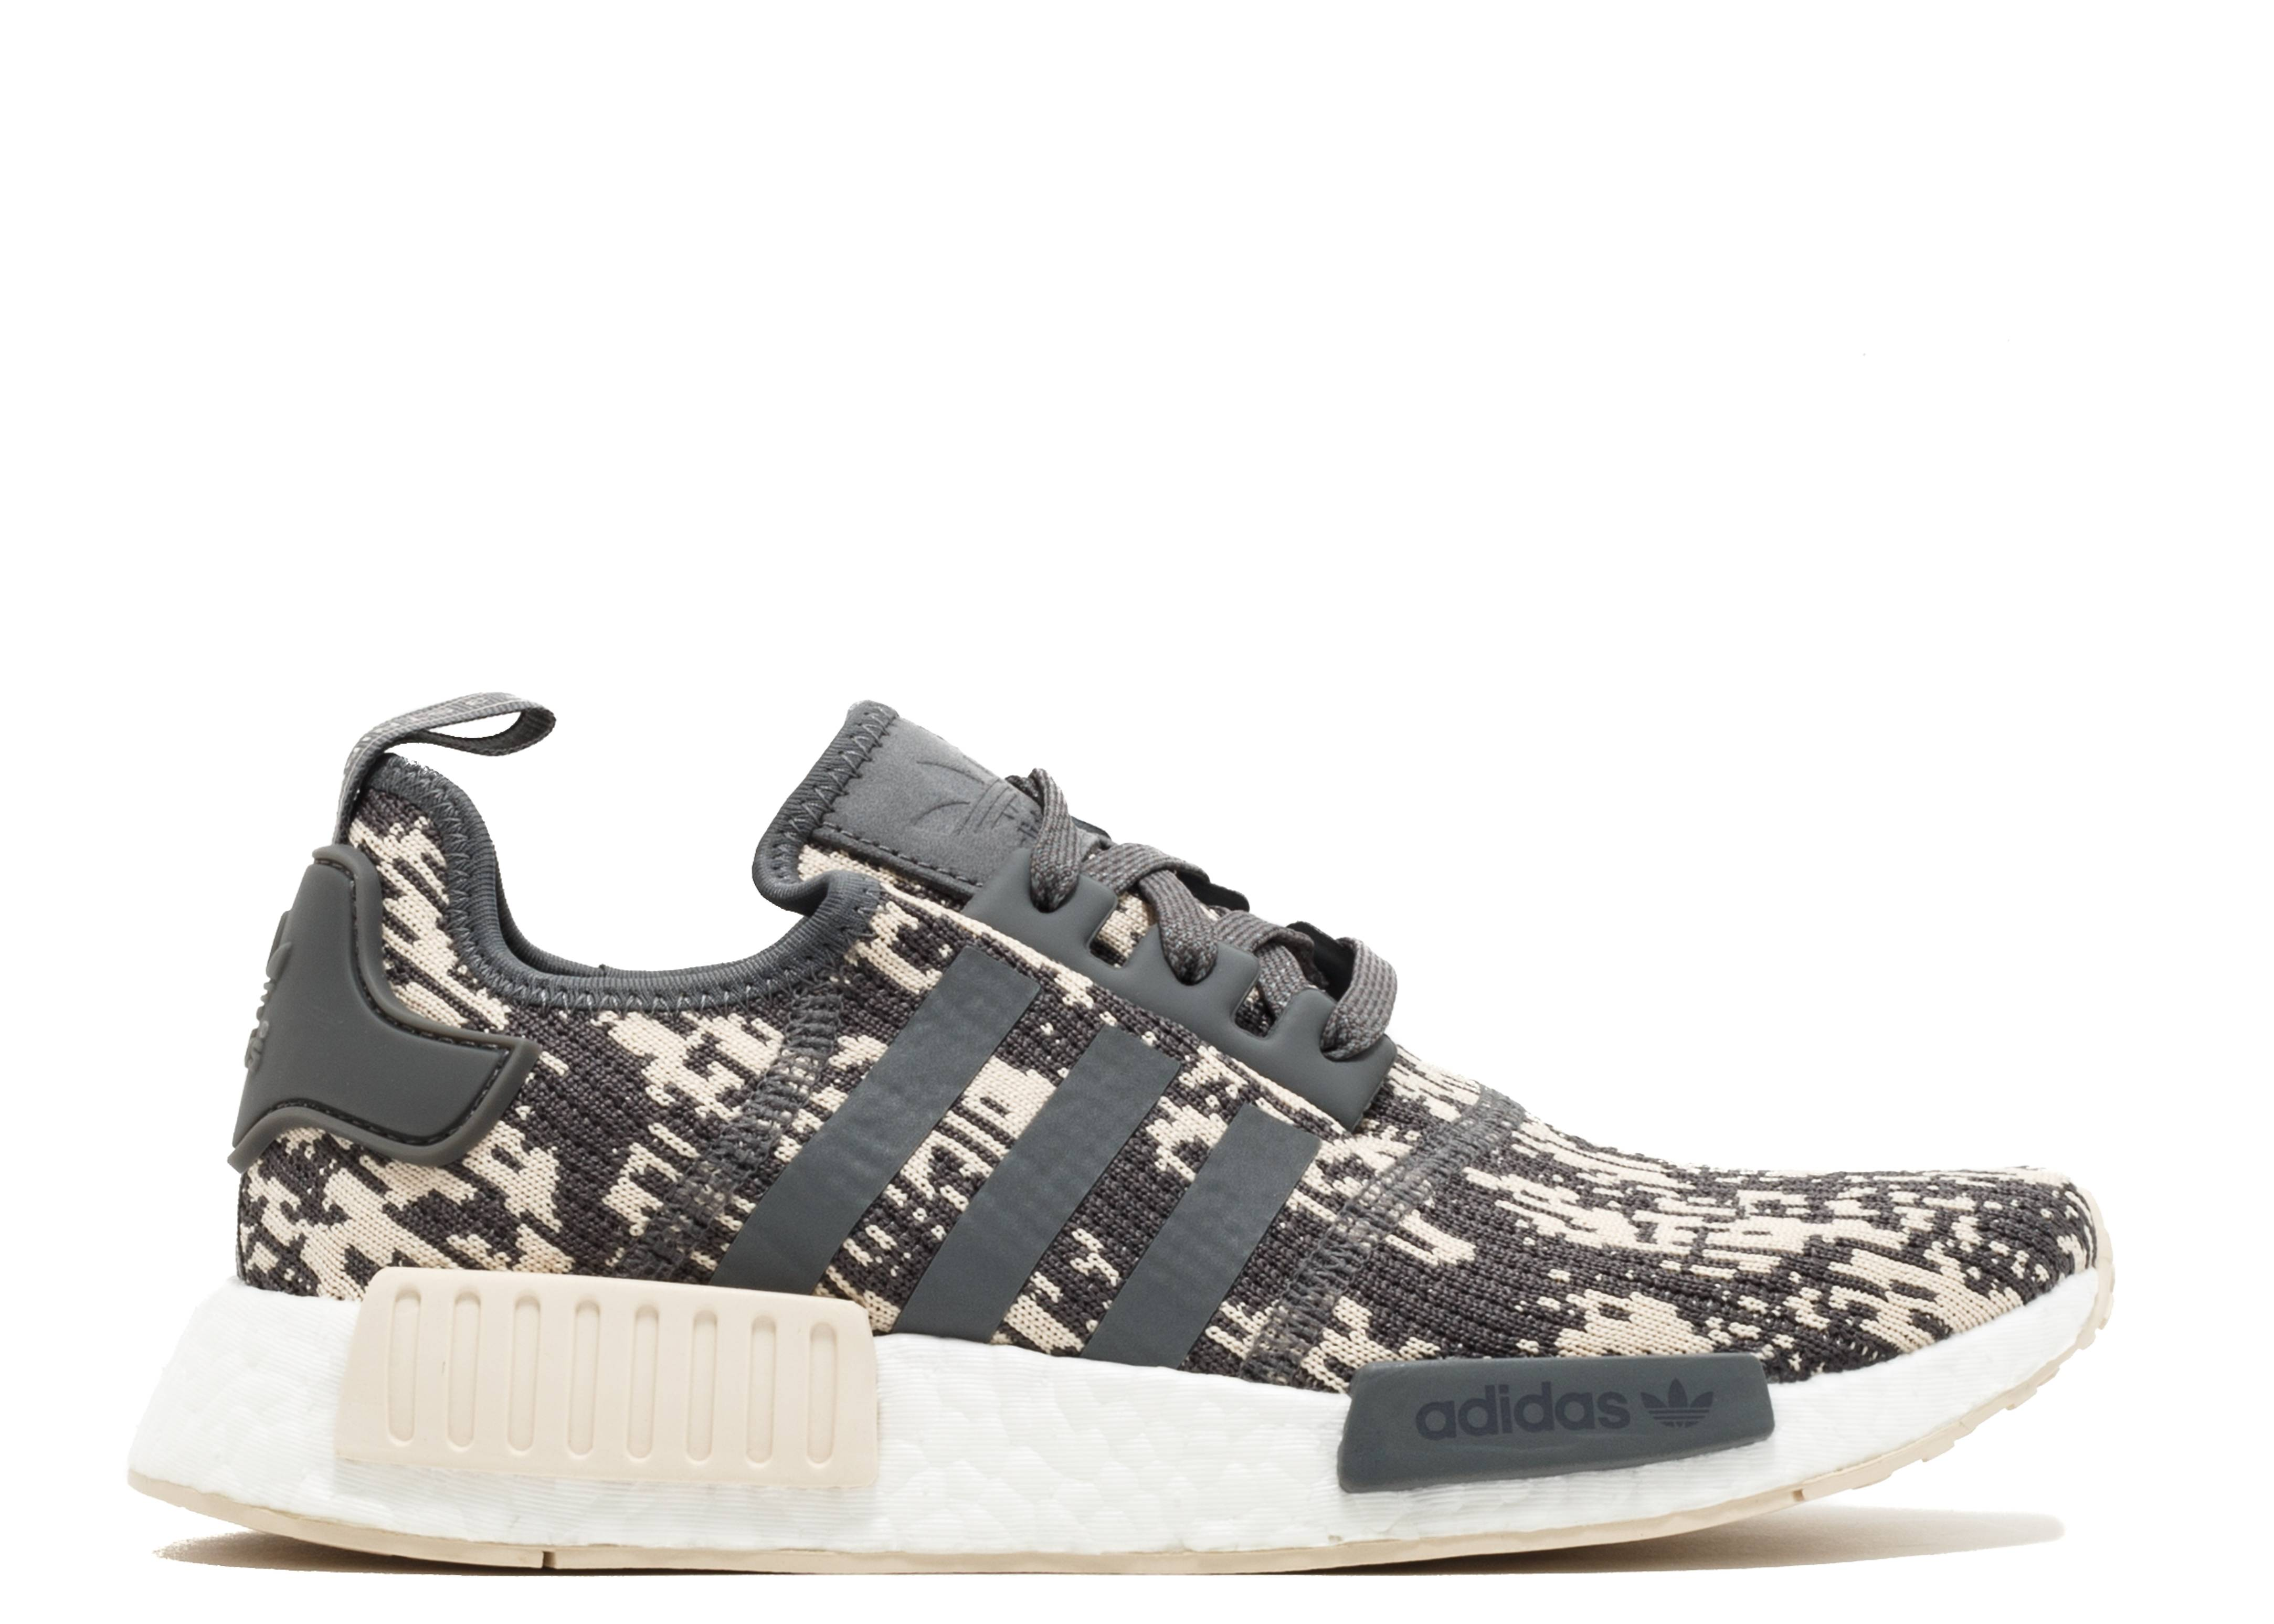 huge selection of 745dc 7fa5e half off d4819 a64cf adidas nmd r1 glitch camo grey linen ...